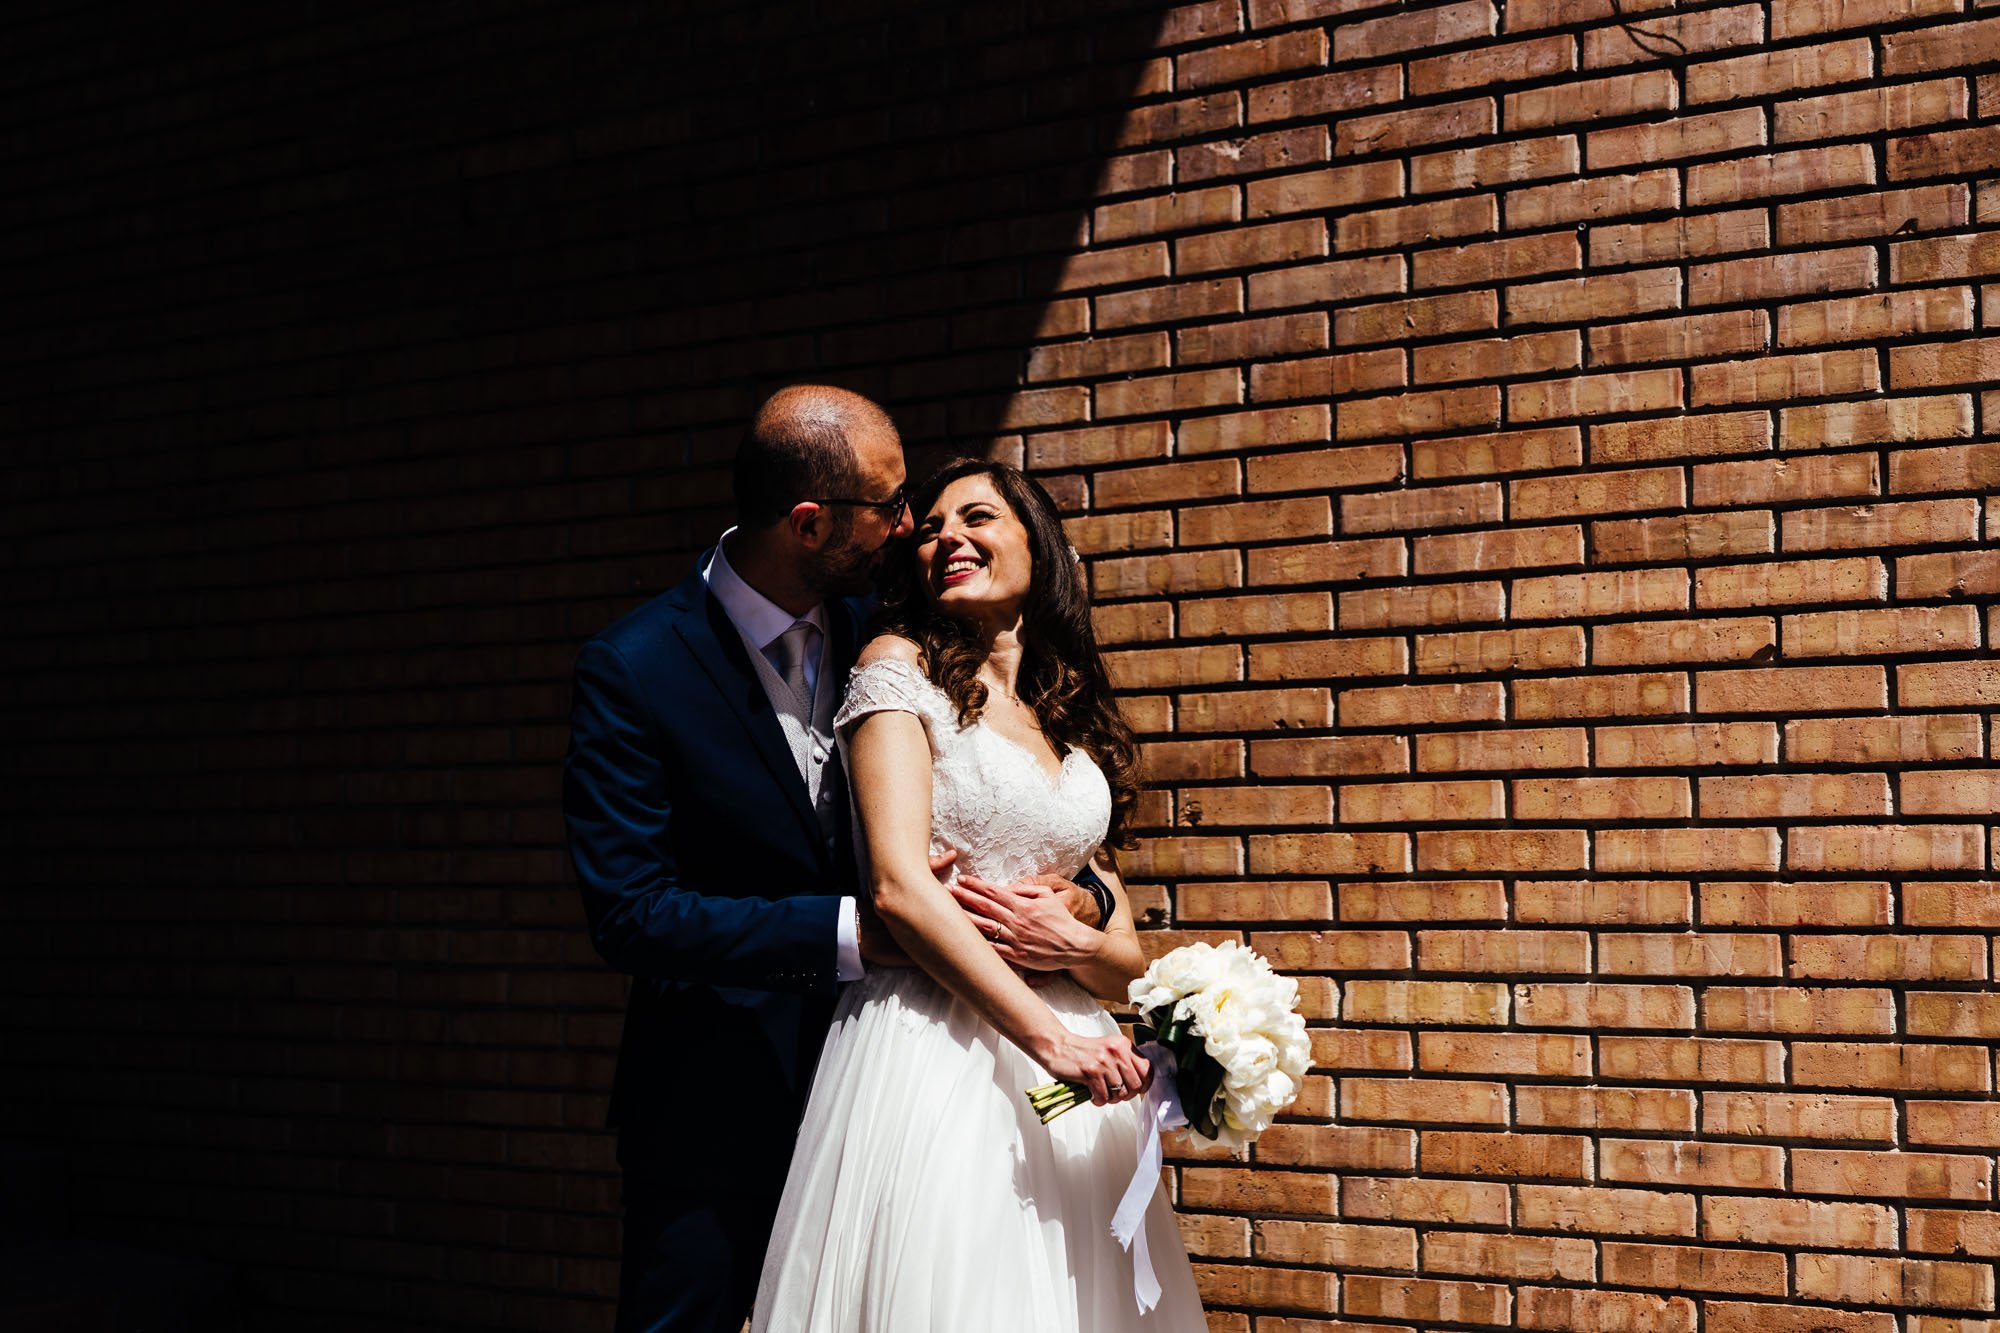 wedding-in-italy-mary-mimmo-46